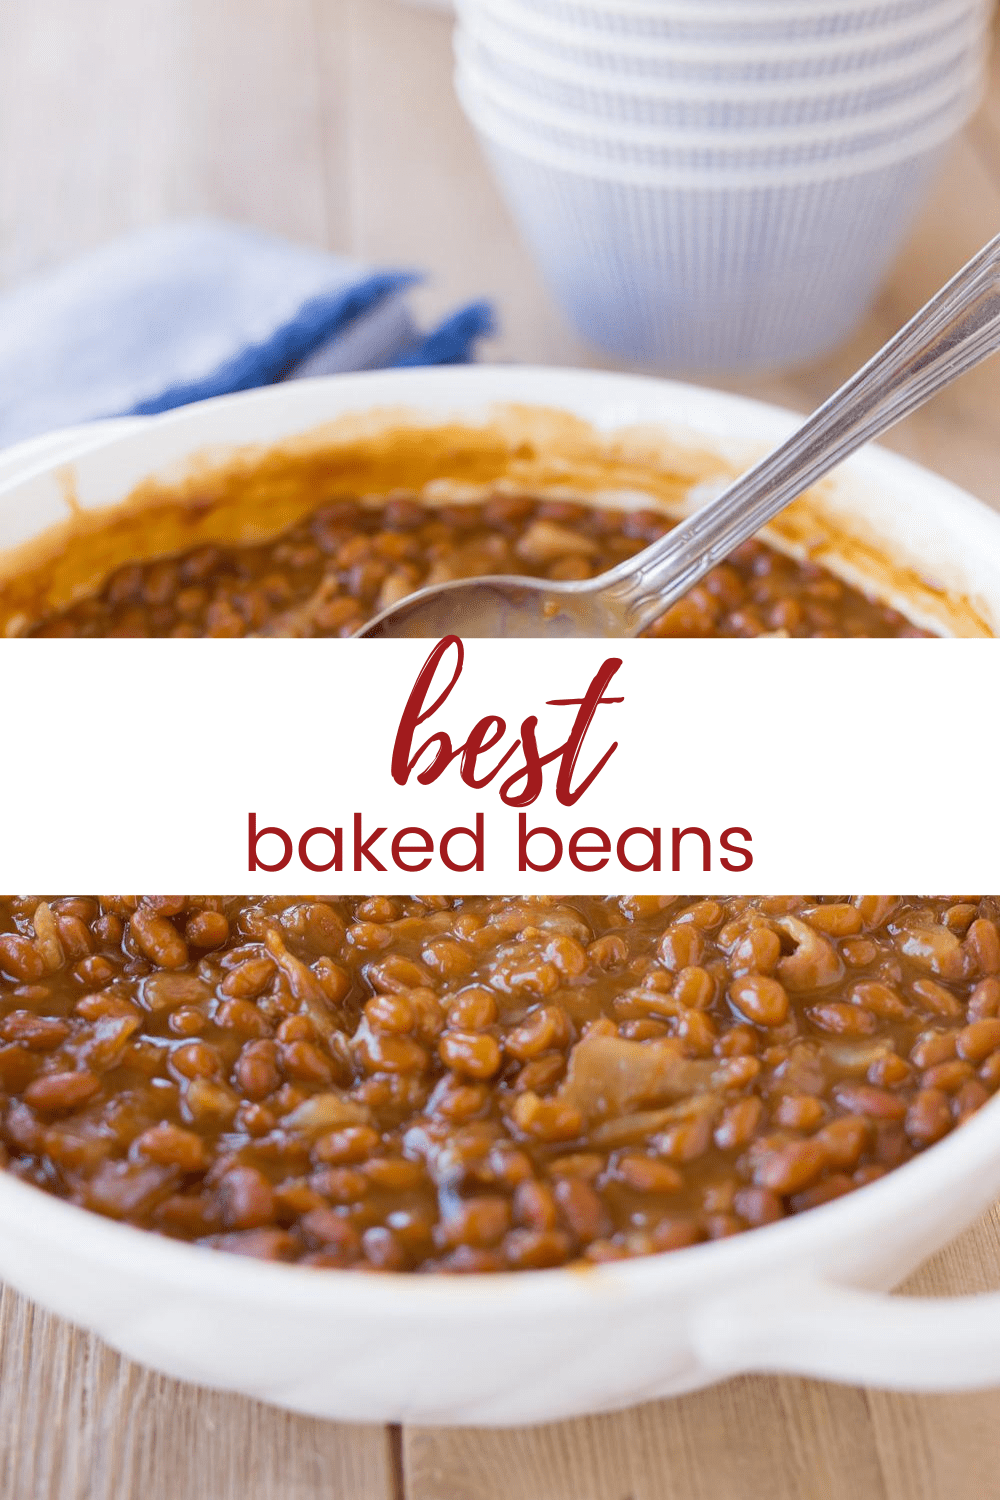 Summertime Barbecue Recipes And Entertaining Ideas In 2020 Best Baked Beans Homemade Bbq Recipes Homemade Dinner Recipes